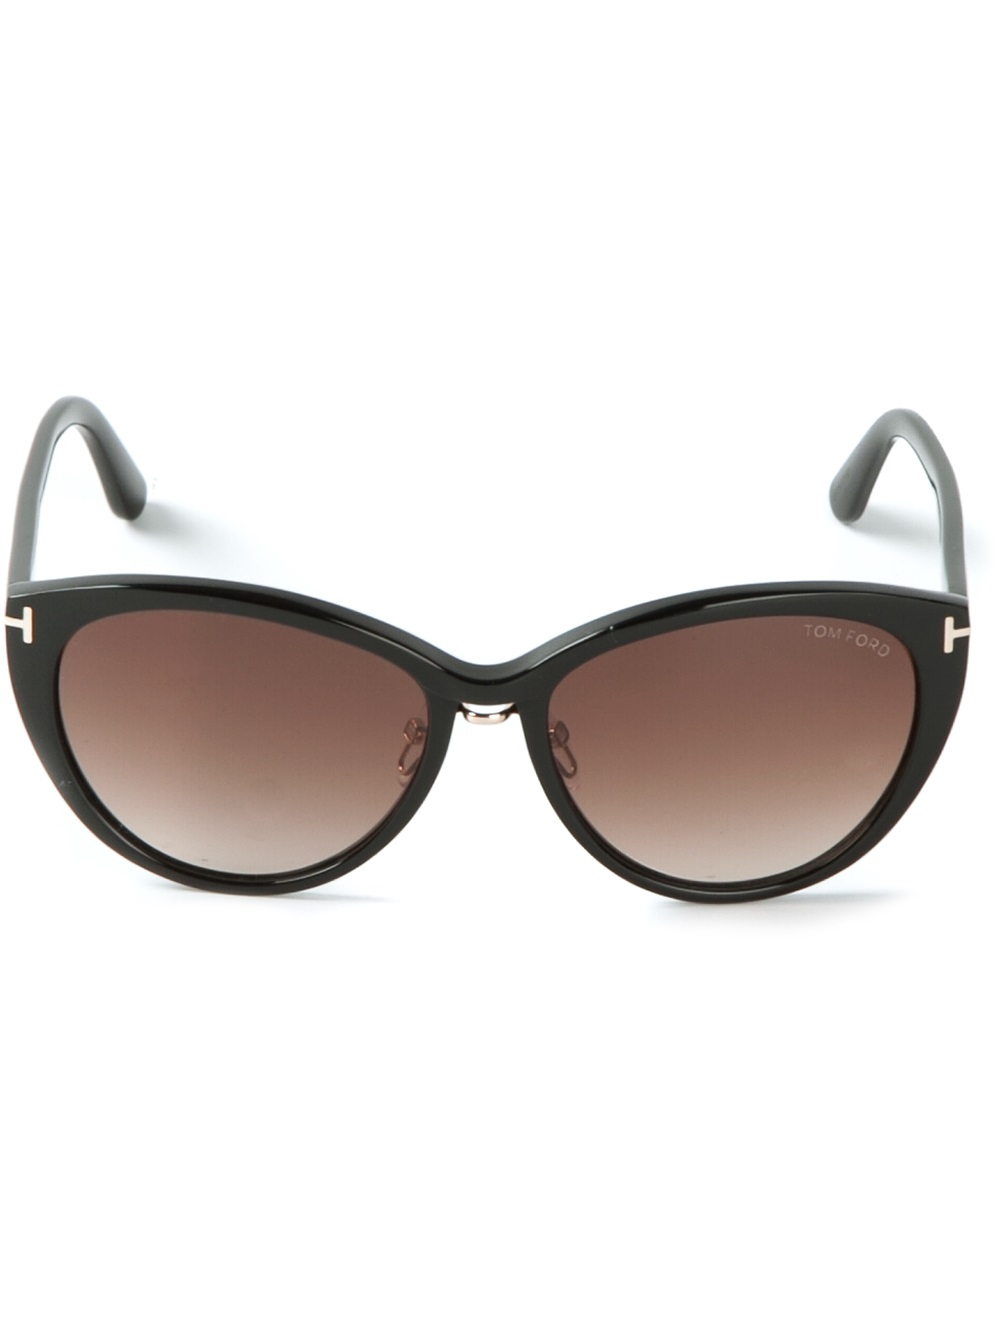 tom ford cats eye sunglasses in black lyst. Cars Review. Best American Auto & Cars Review